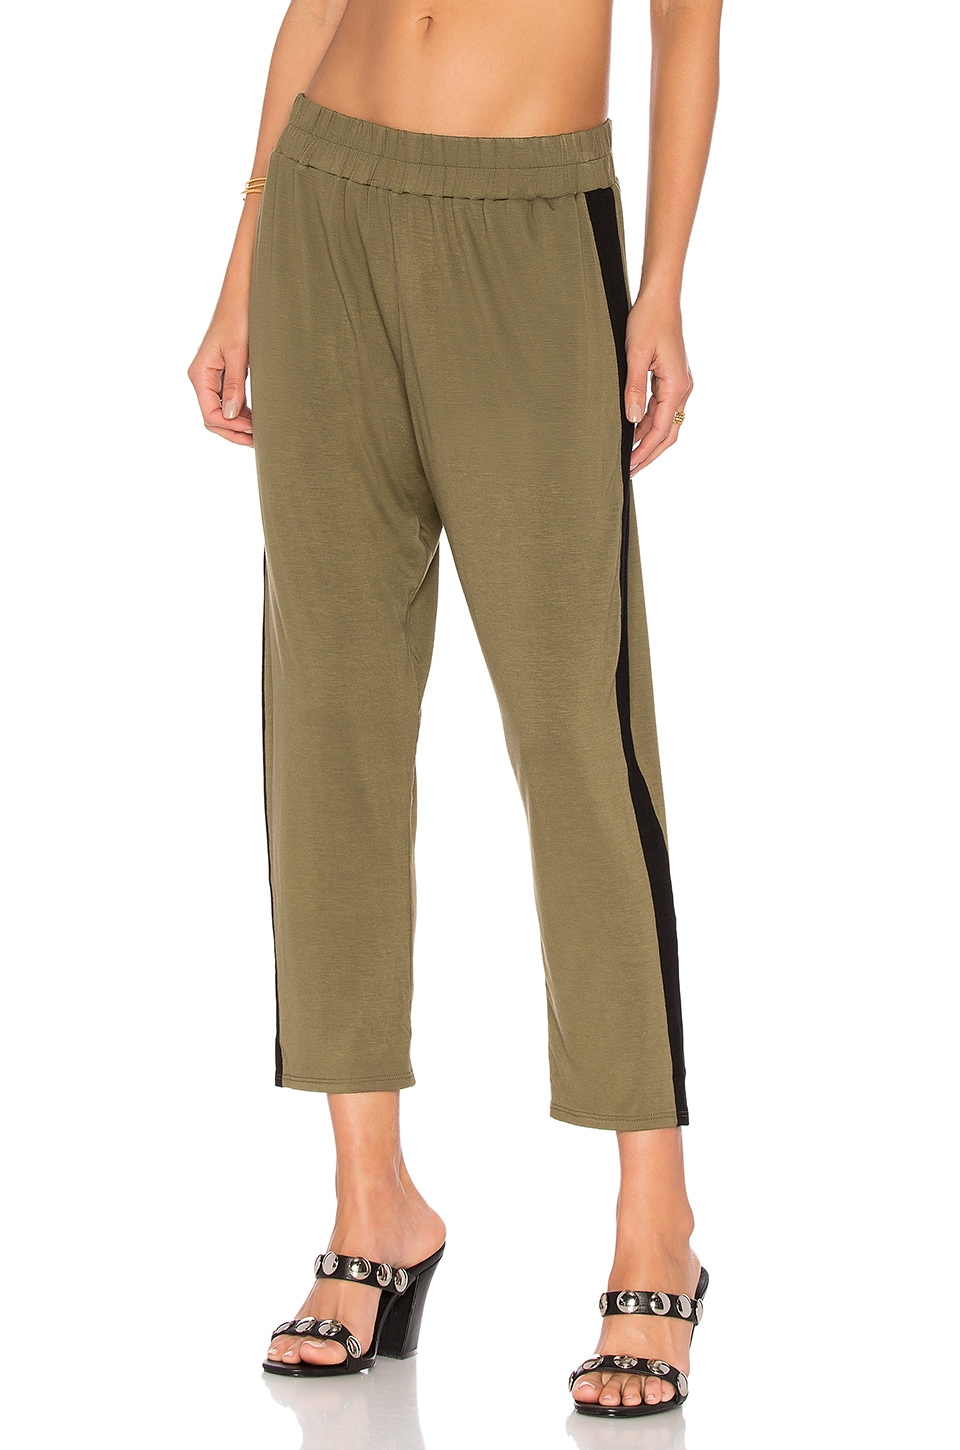 Clayton Track Pant in Olive & Black